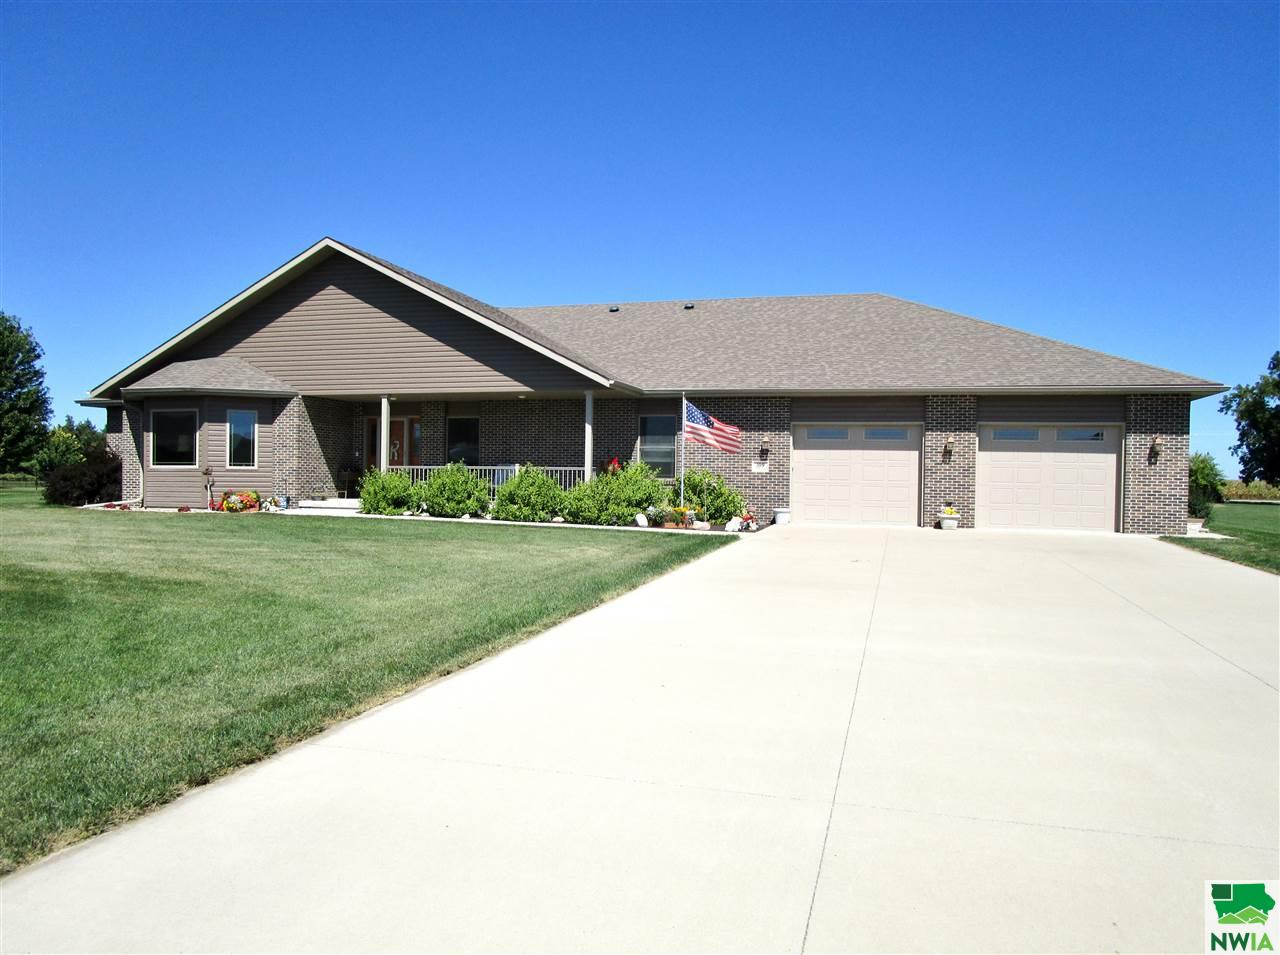 Property for sale at 109 Hanks Way, South Sioux City,  NE 68776